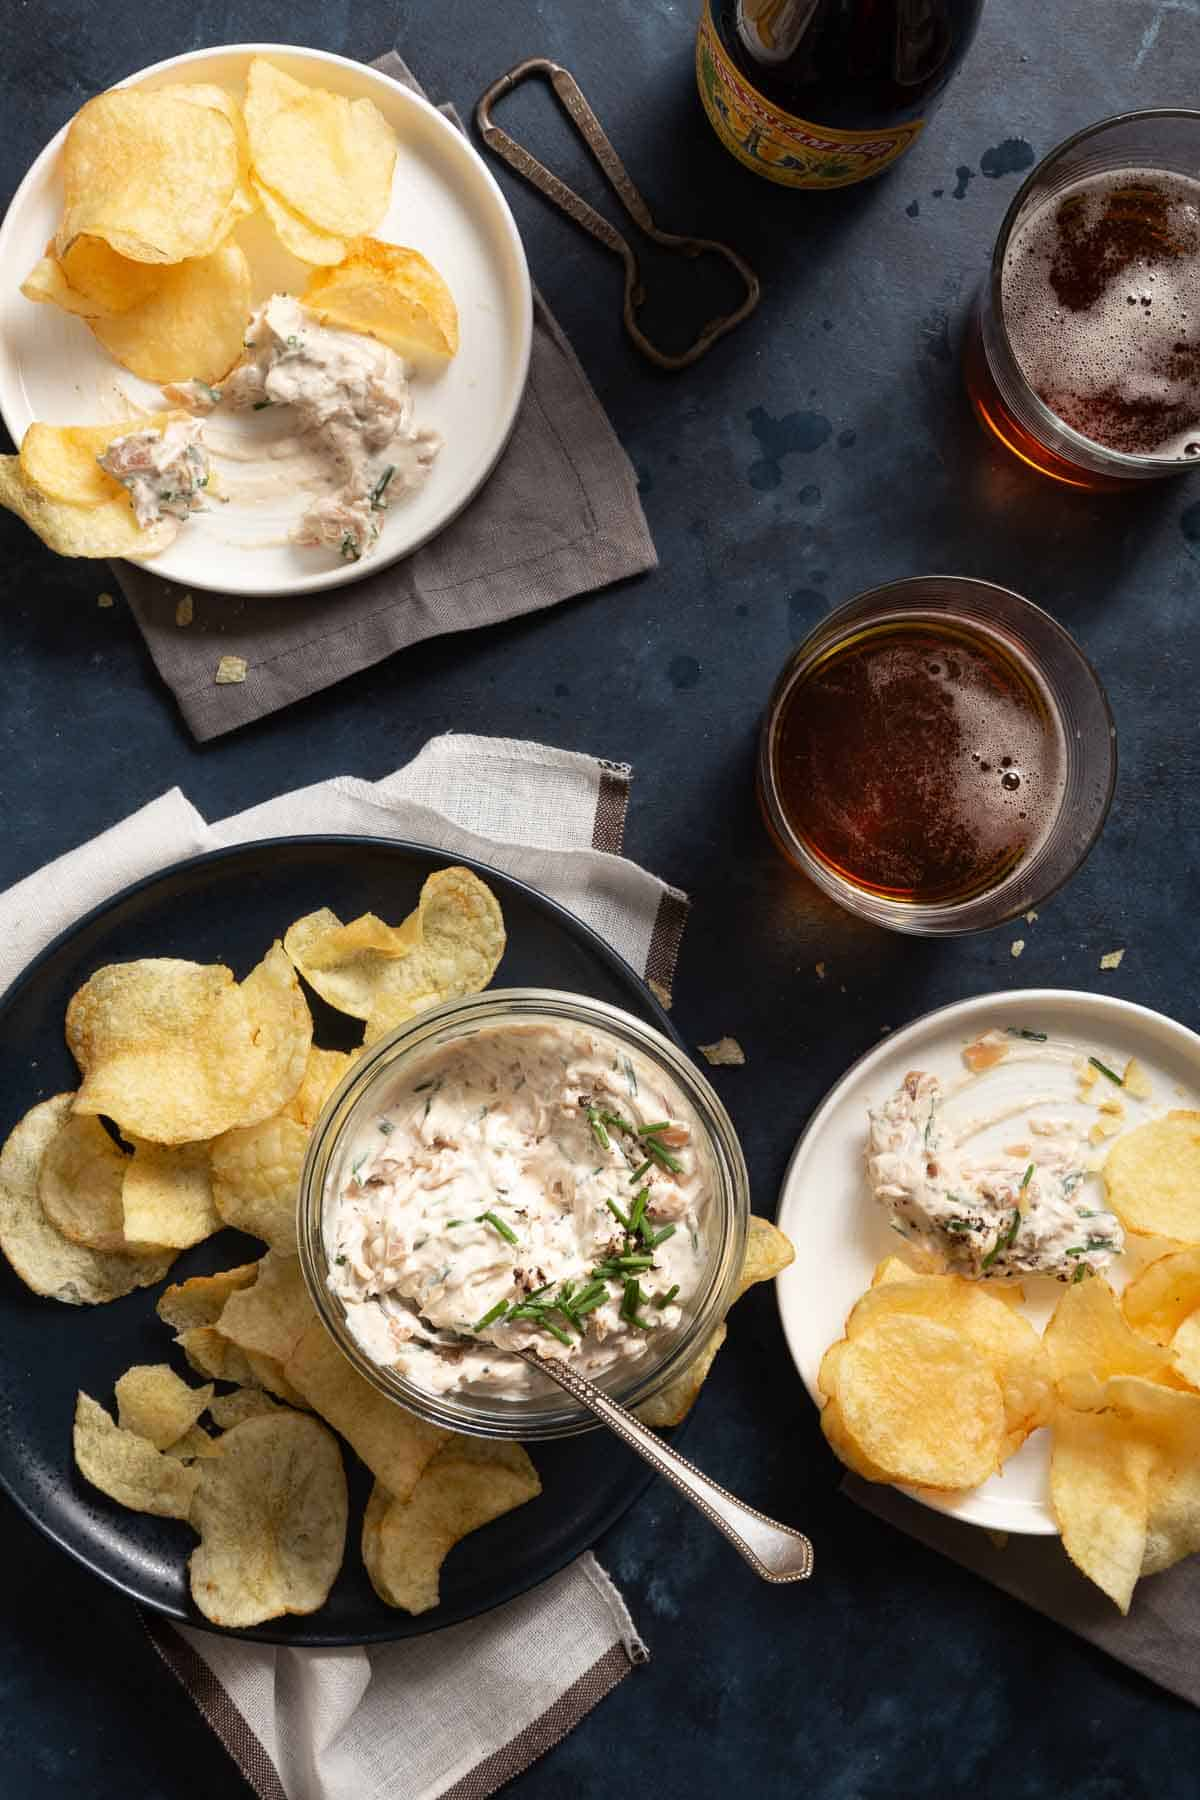 Plates with chips and dip, and glasses of beer on the side.